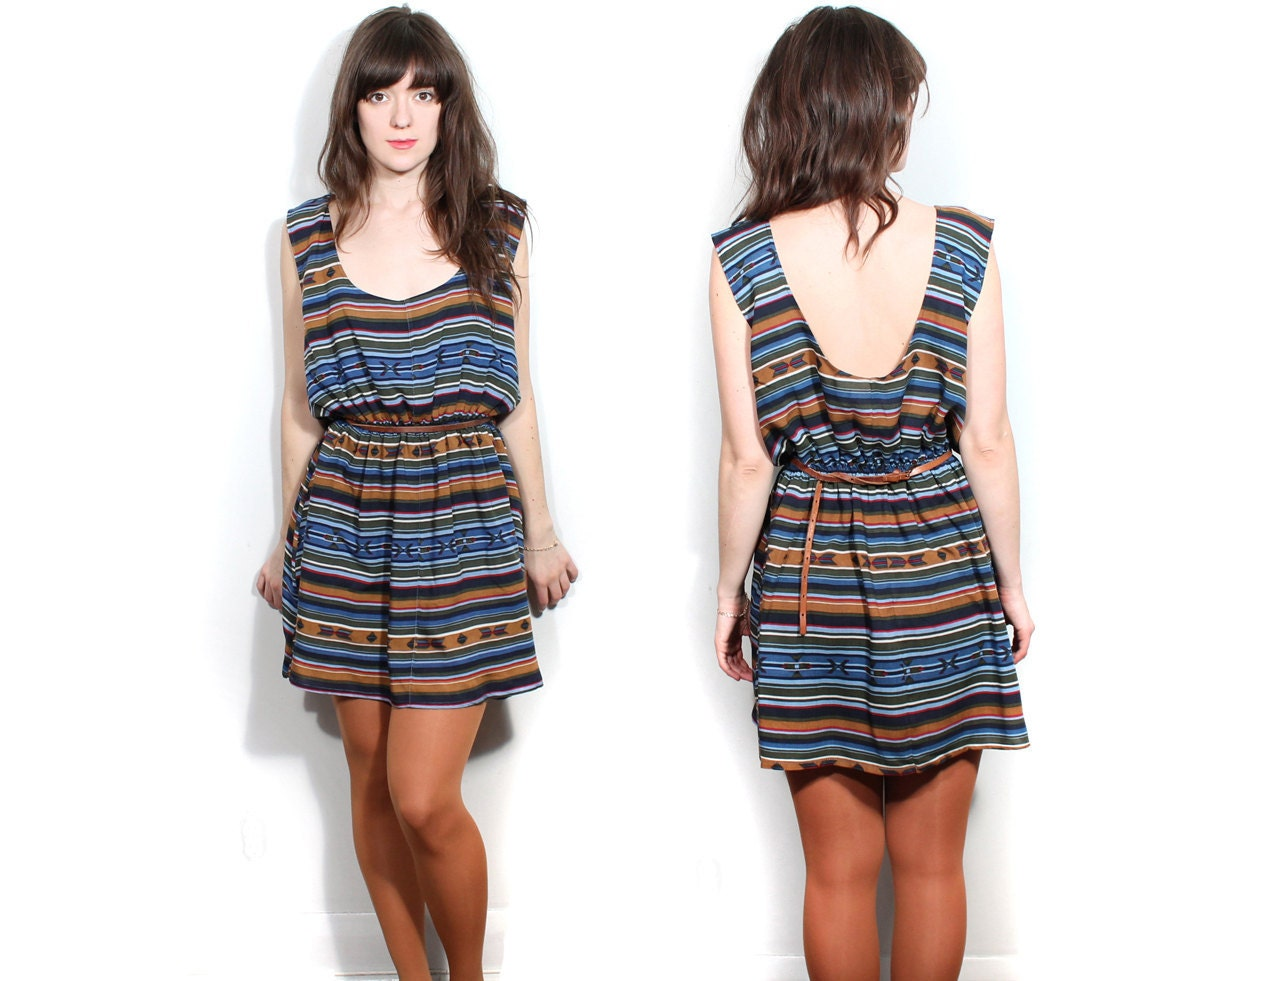 Ma Bicyclette: Buy Handmade   Dresses - Better Stay Together recycled vintage fabric handmade dress